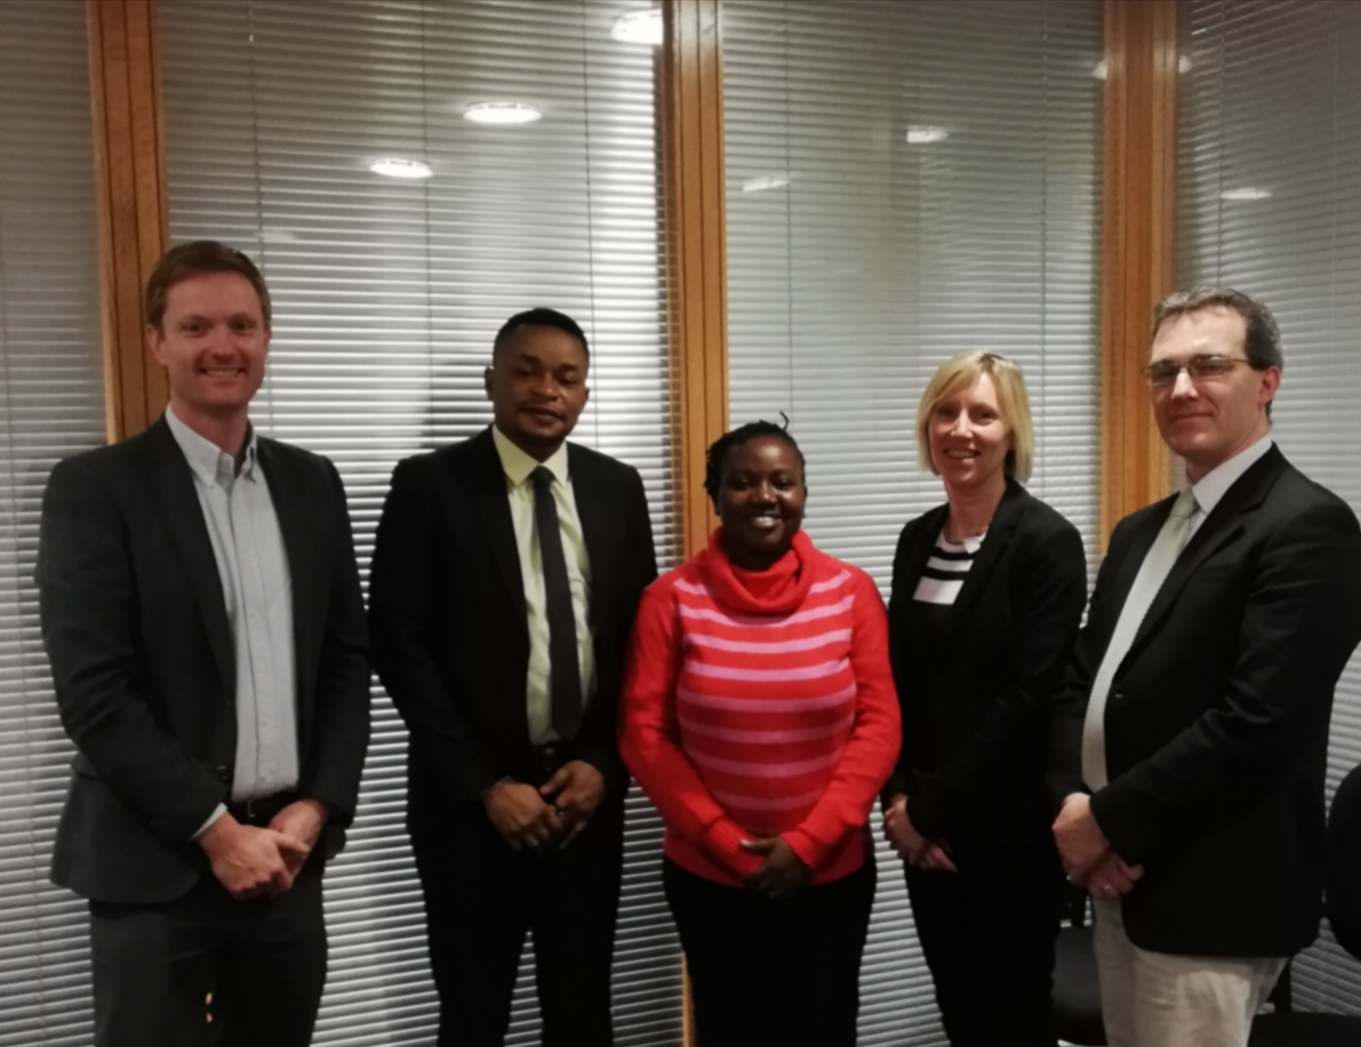 Pictured are: Dr. Derek Sinnott, Head of Department of Built Environment, Mr. Jude Akporumeta, Riabisel Ltd., Ms. Damilola Oladejo, Champions Pitch Consulting, Ms. Sinead Day, International Affairs Manager, Dr. Philip Walsh, School of Engineering